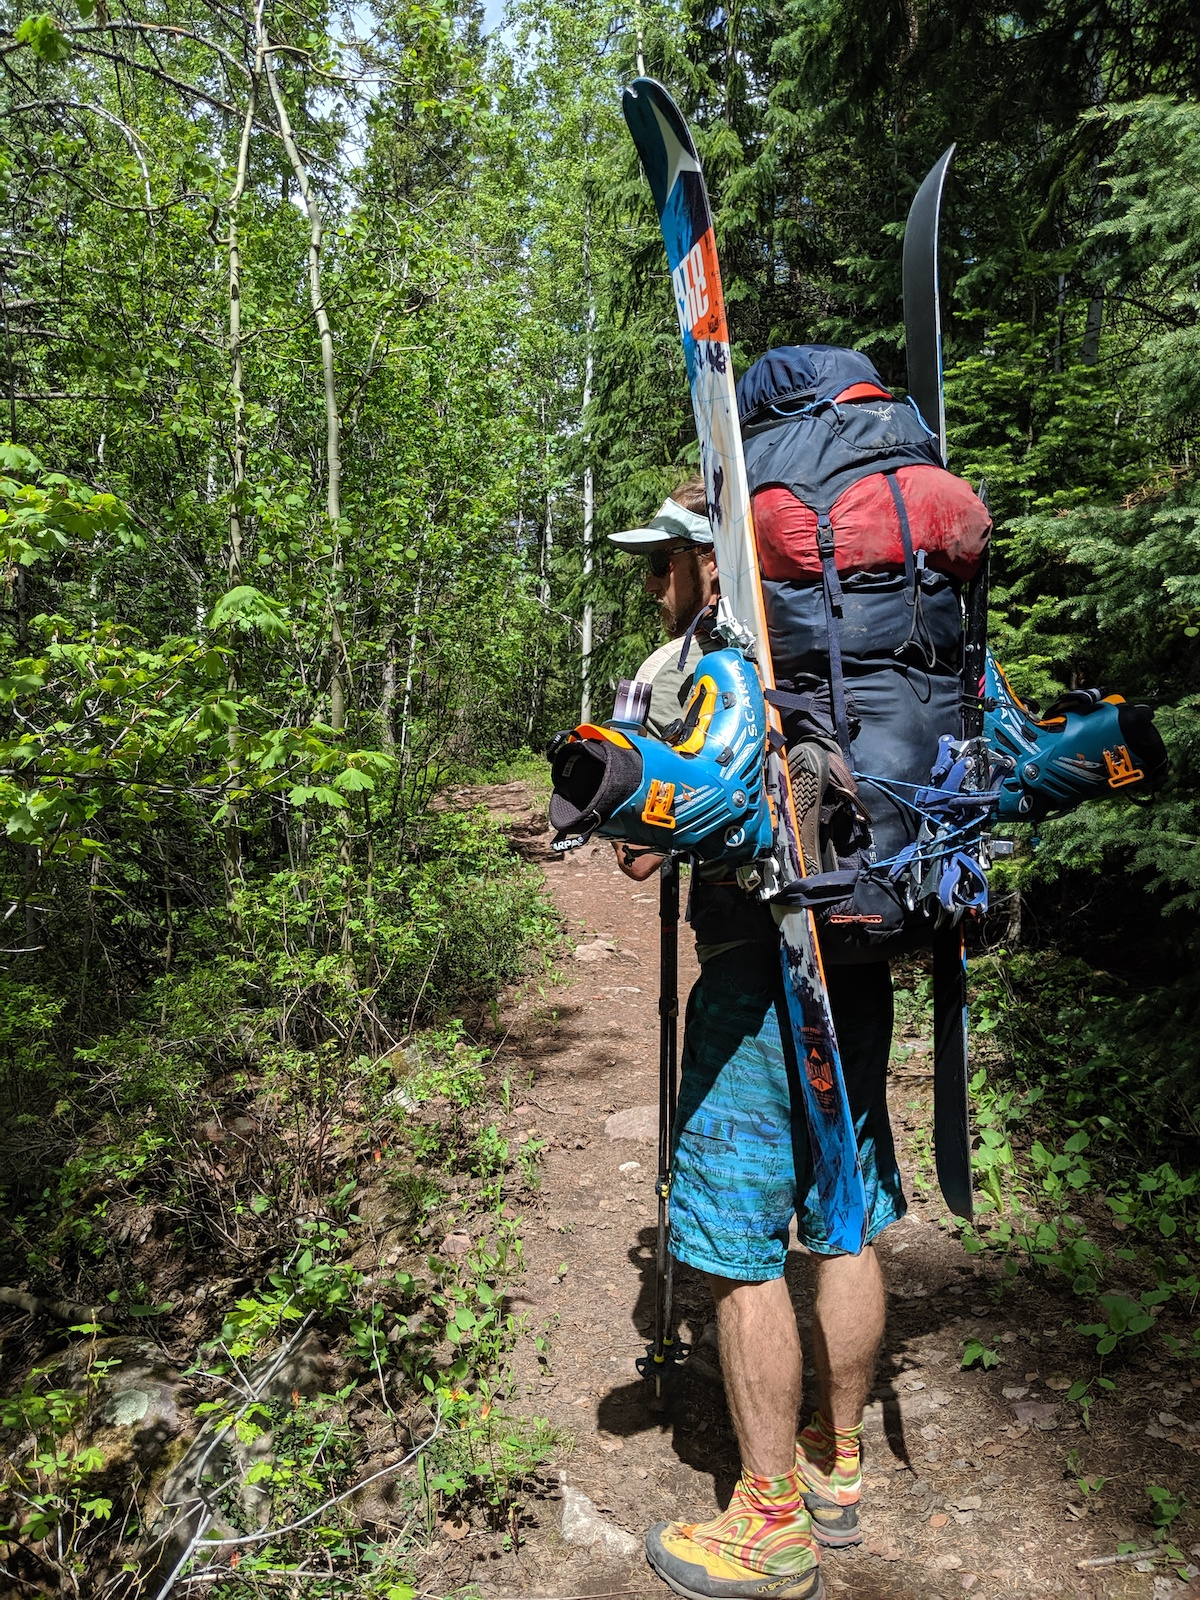 Drew Thayer carries the Osprey Mutant 52 backpack loaded with ski mountaineering gear and a large four-season tent for a climb of Mt. Daly, Elk Range, Colorado. Crampons are tied on with cord to the rear daisy chains. [Photo] Lillian Hancock